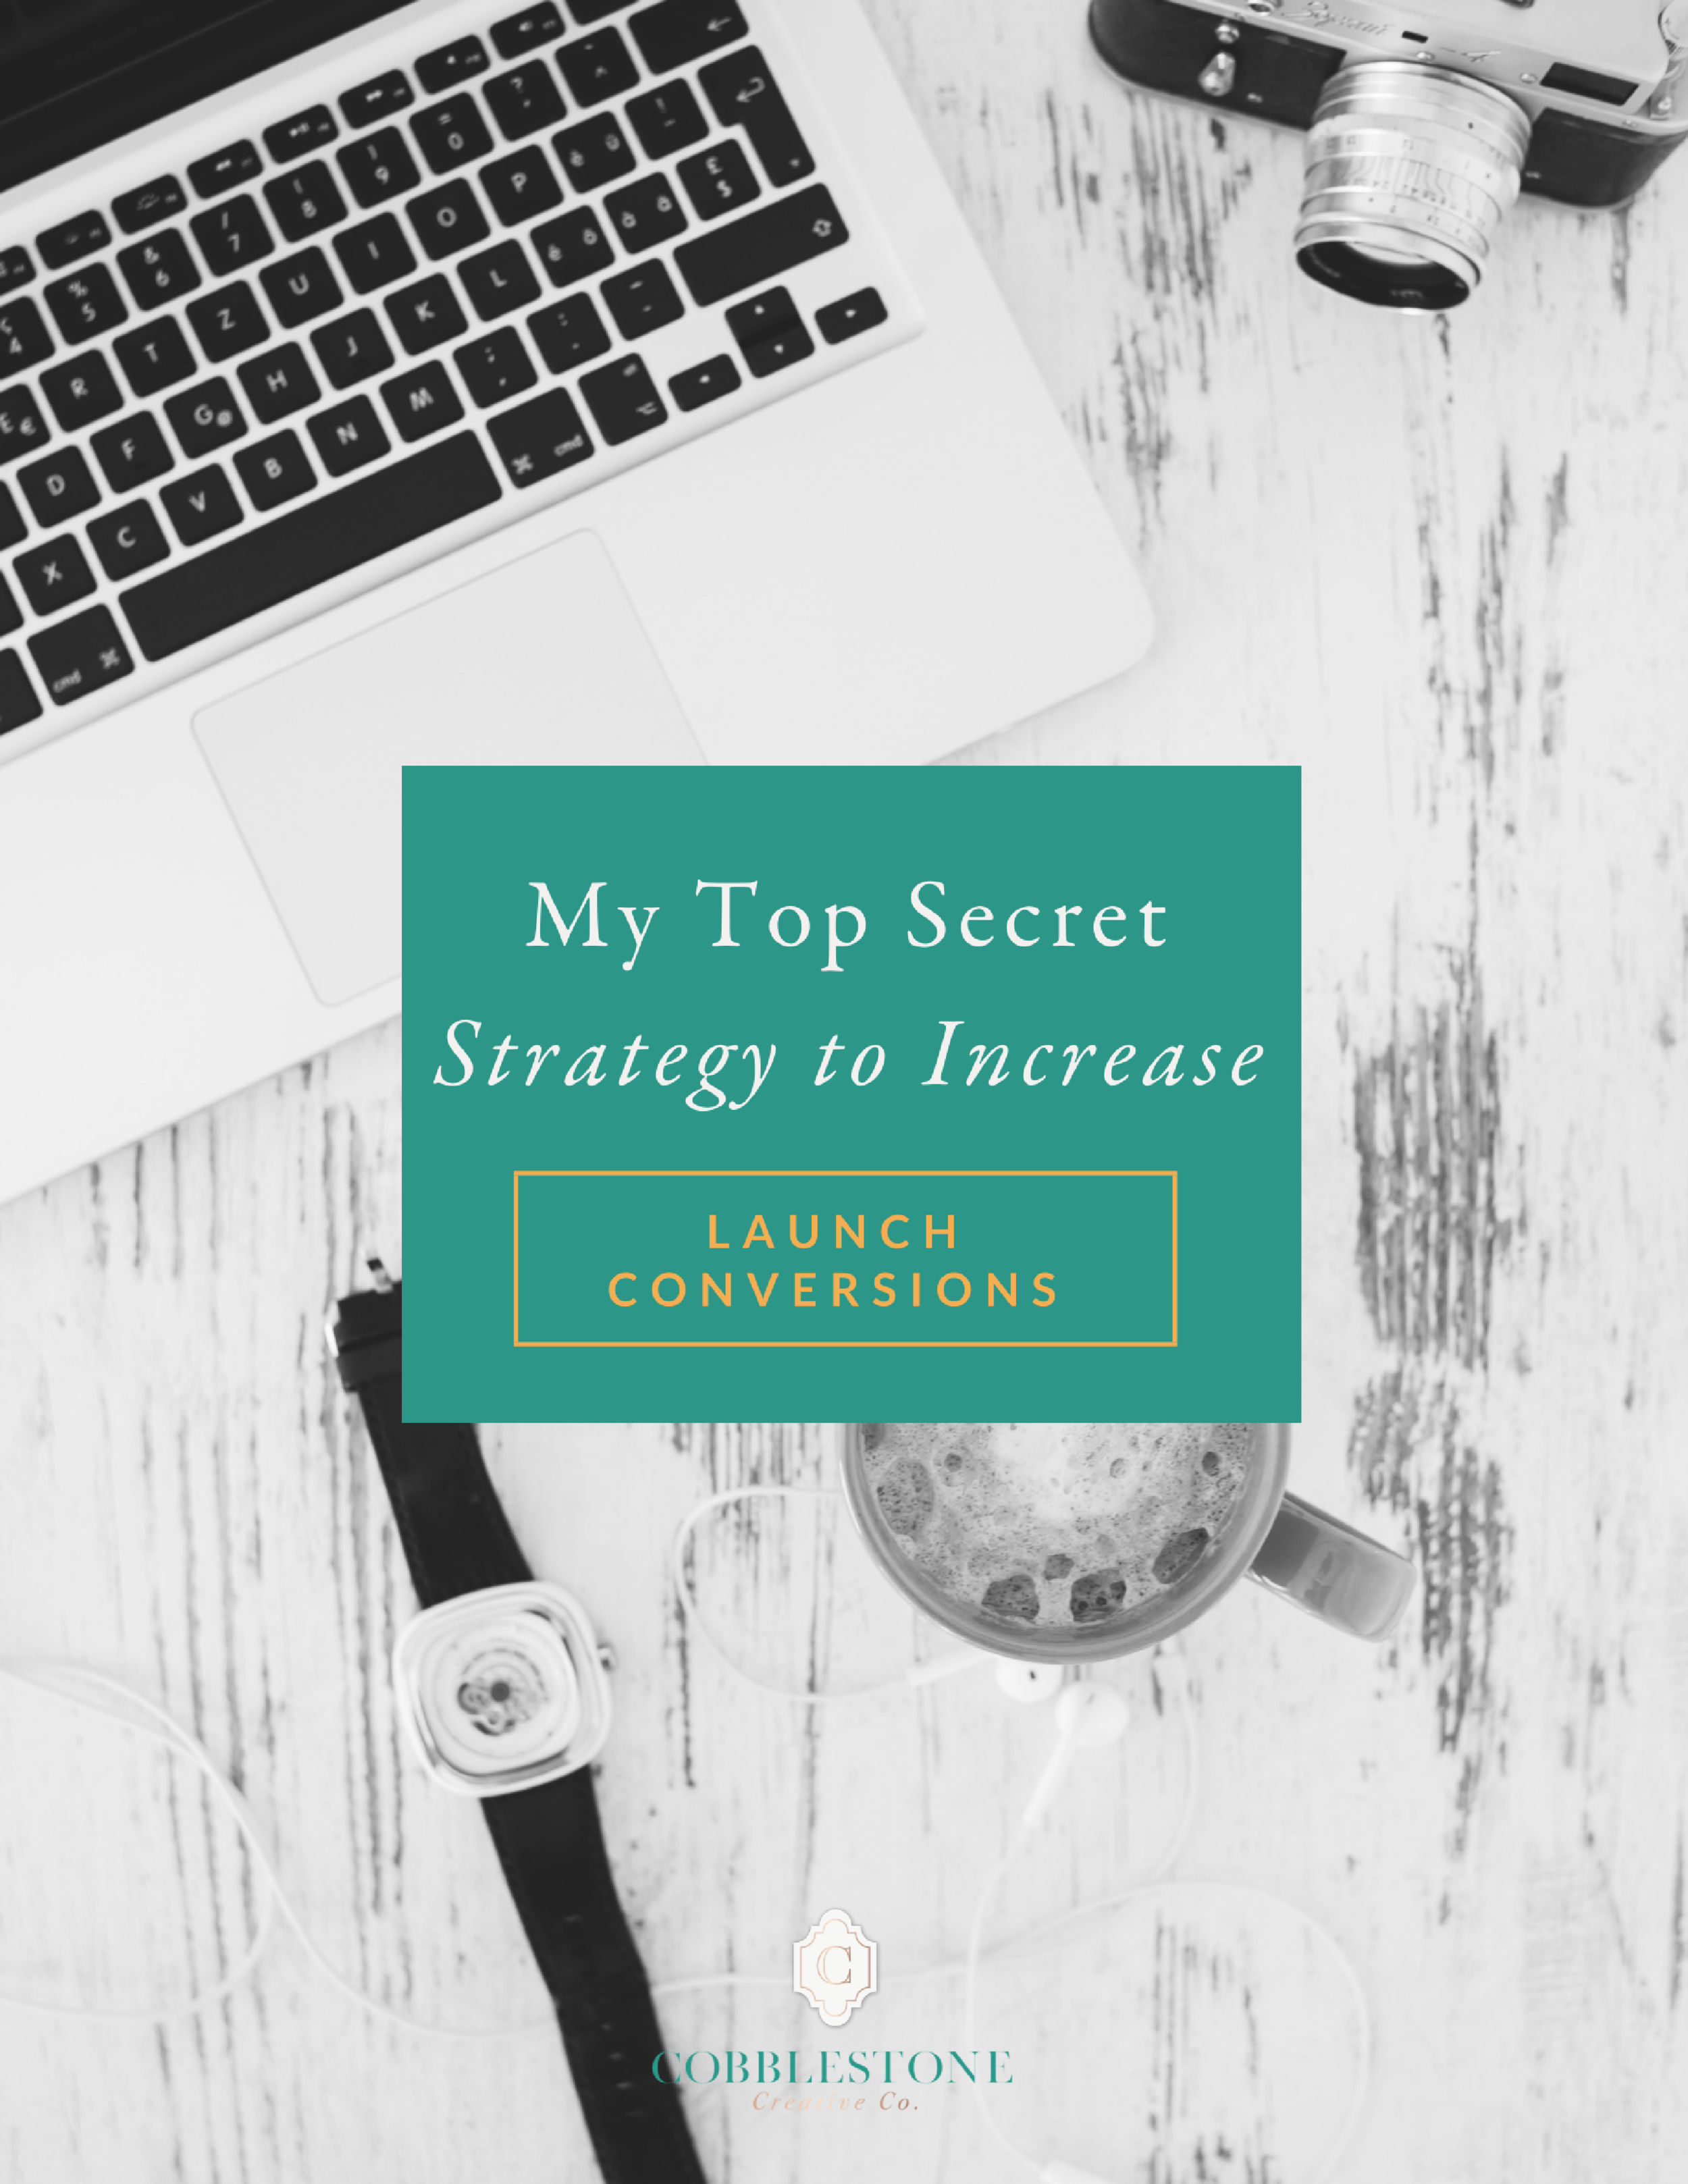 It's easy to look at successful launches and just see the surface level stuff. You know, the emails, the social posts, the ads, the webinars and challenges … and think that's all it takes to have a successful launch. But one easy to way to increase launch conversions is often overlooked. Personal outreach cannot be underestimated. Want to learn more about how powerful personal outreach can be? Click through to discover how I incorporate personal outreach in my launches to increase conversions!